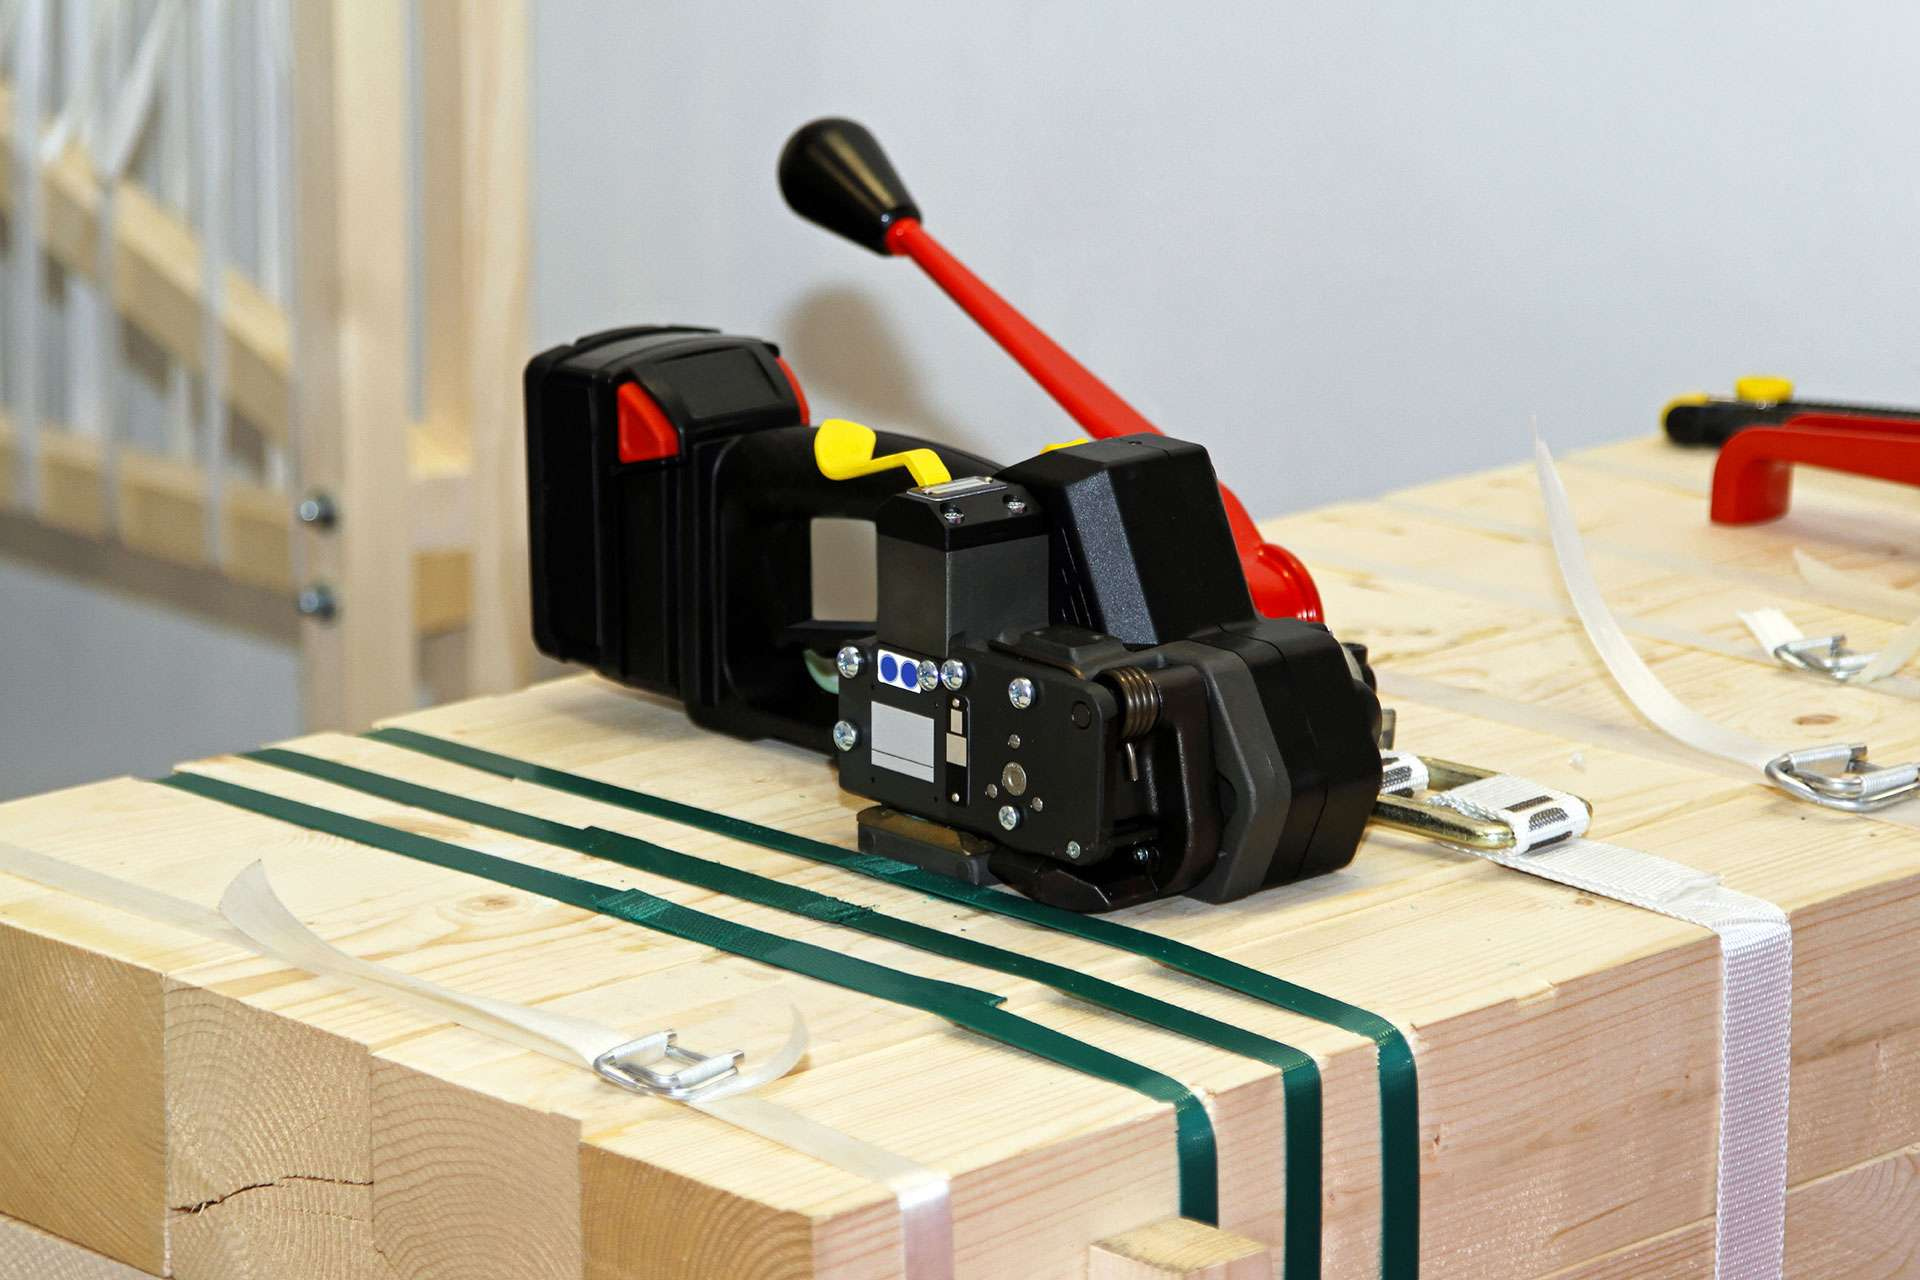 Strapping and strapping tools on pallet.